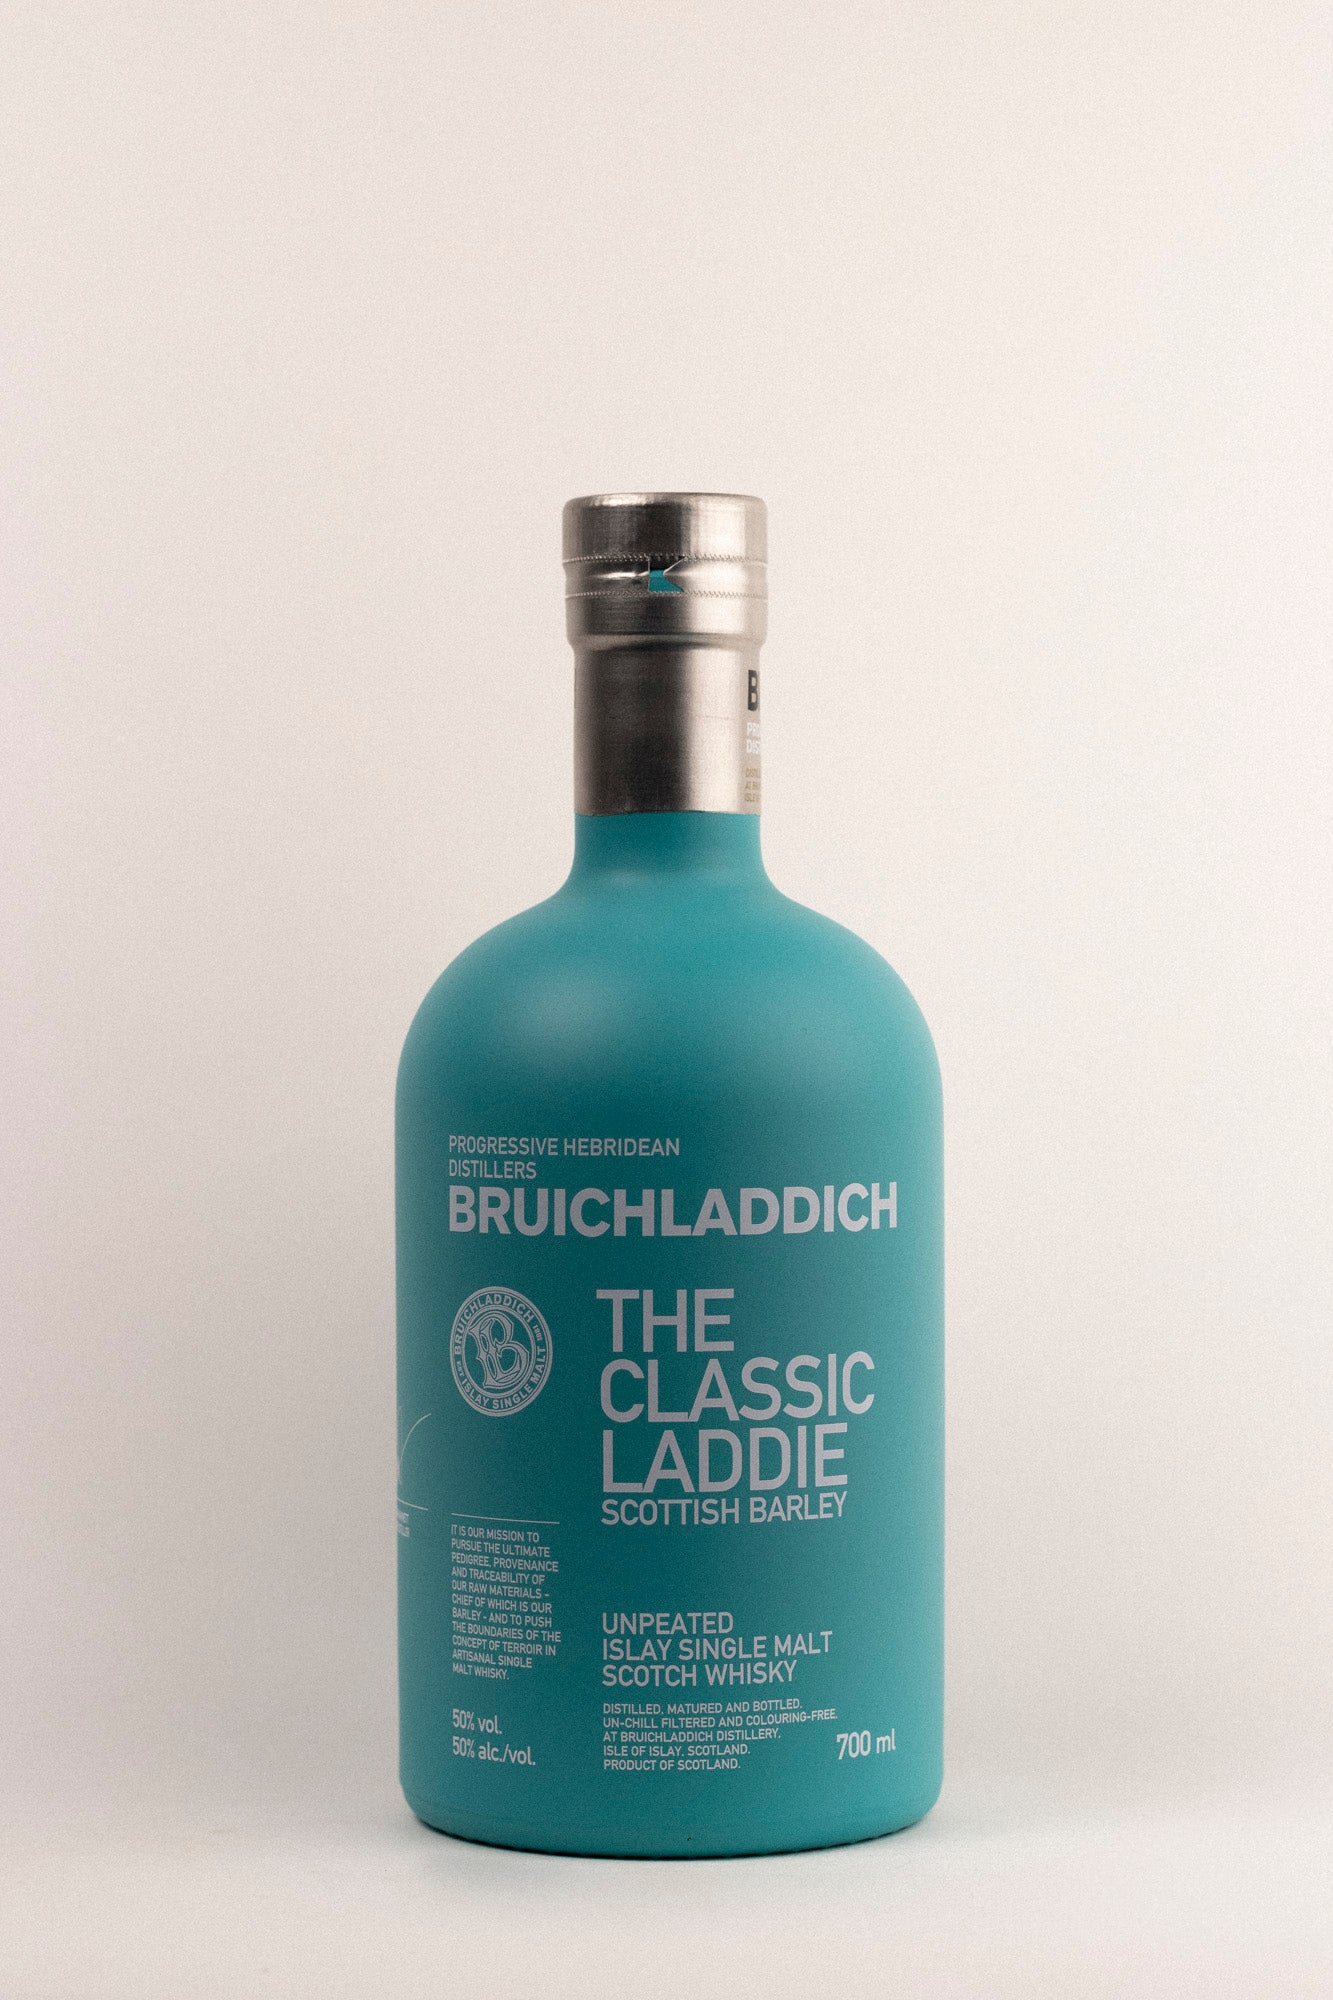 Bruichladdich Scottish Barley - The Classic Laddie, 700ml